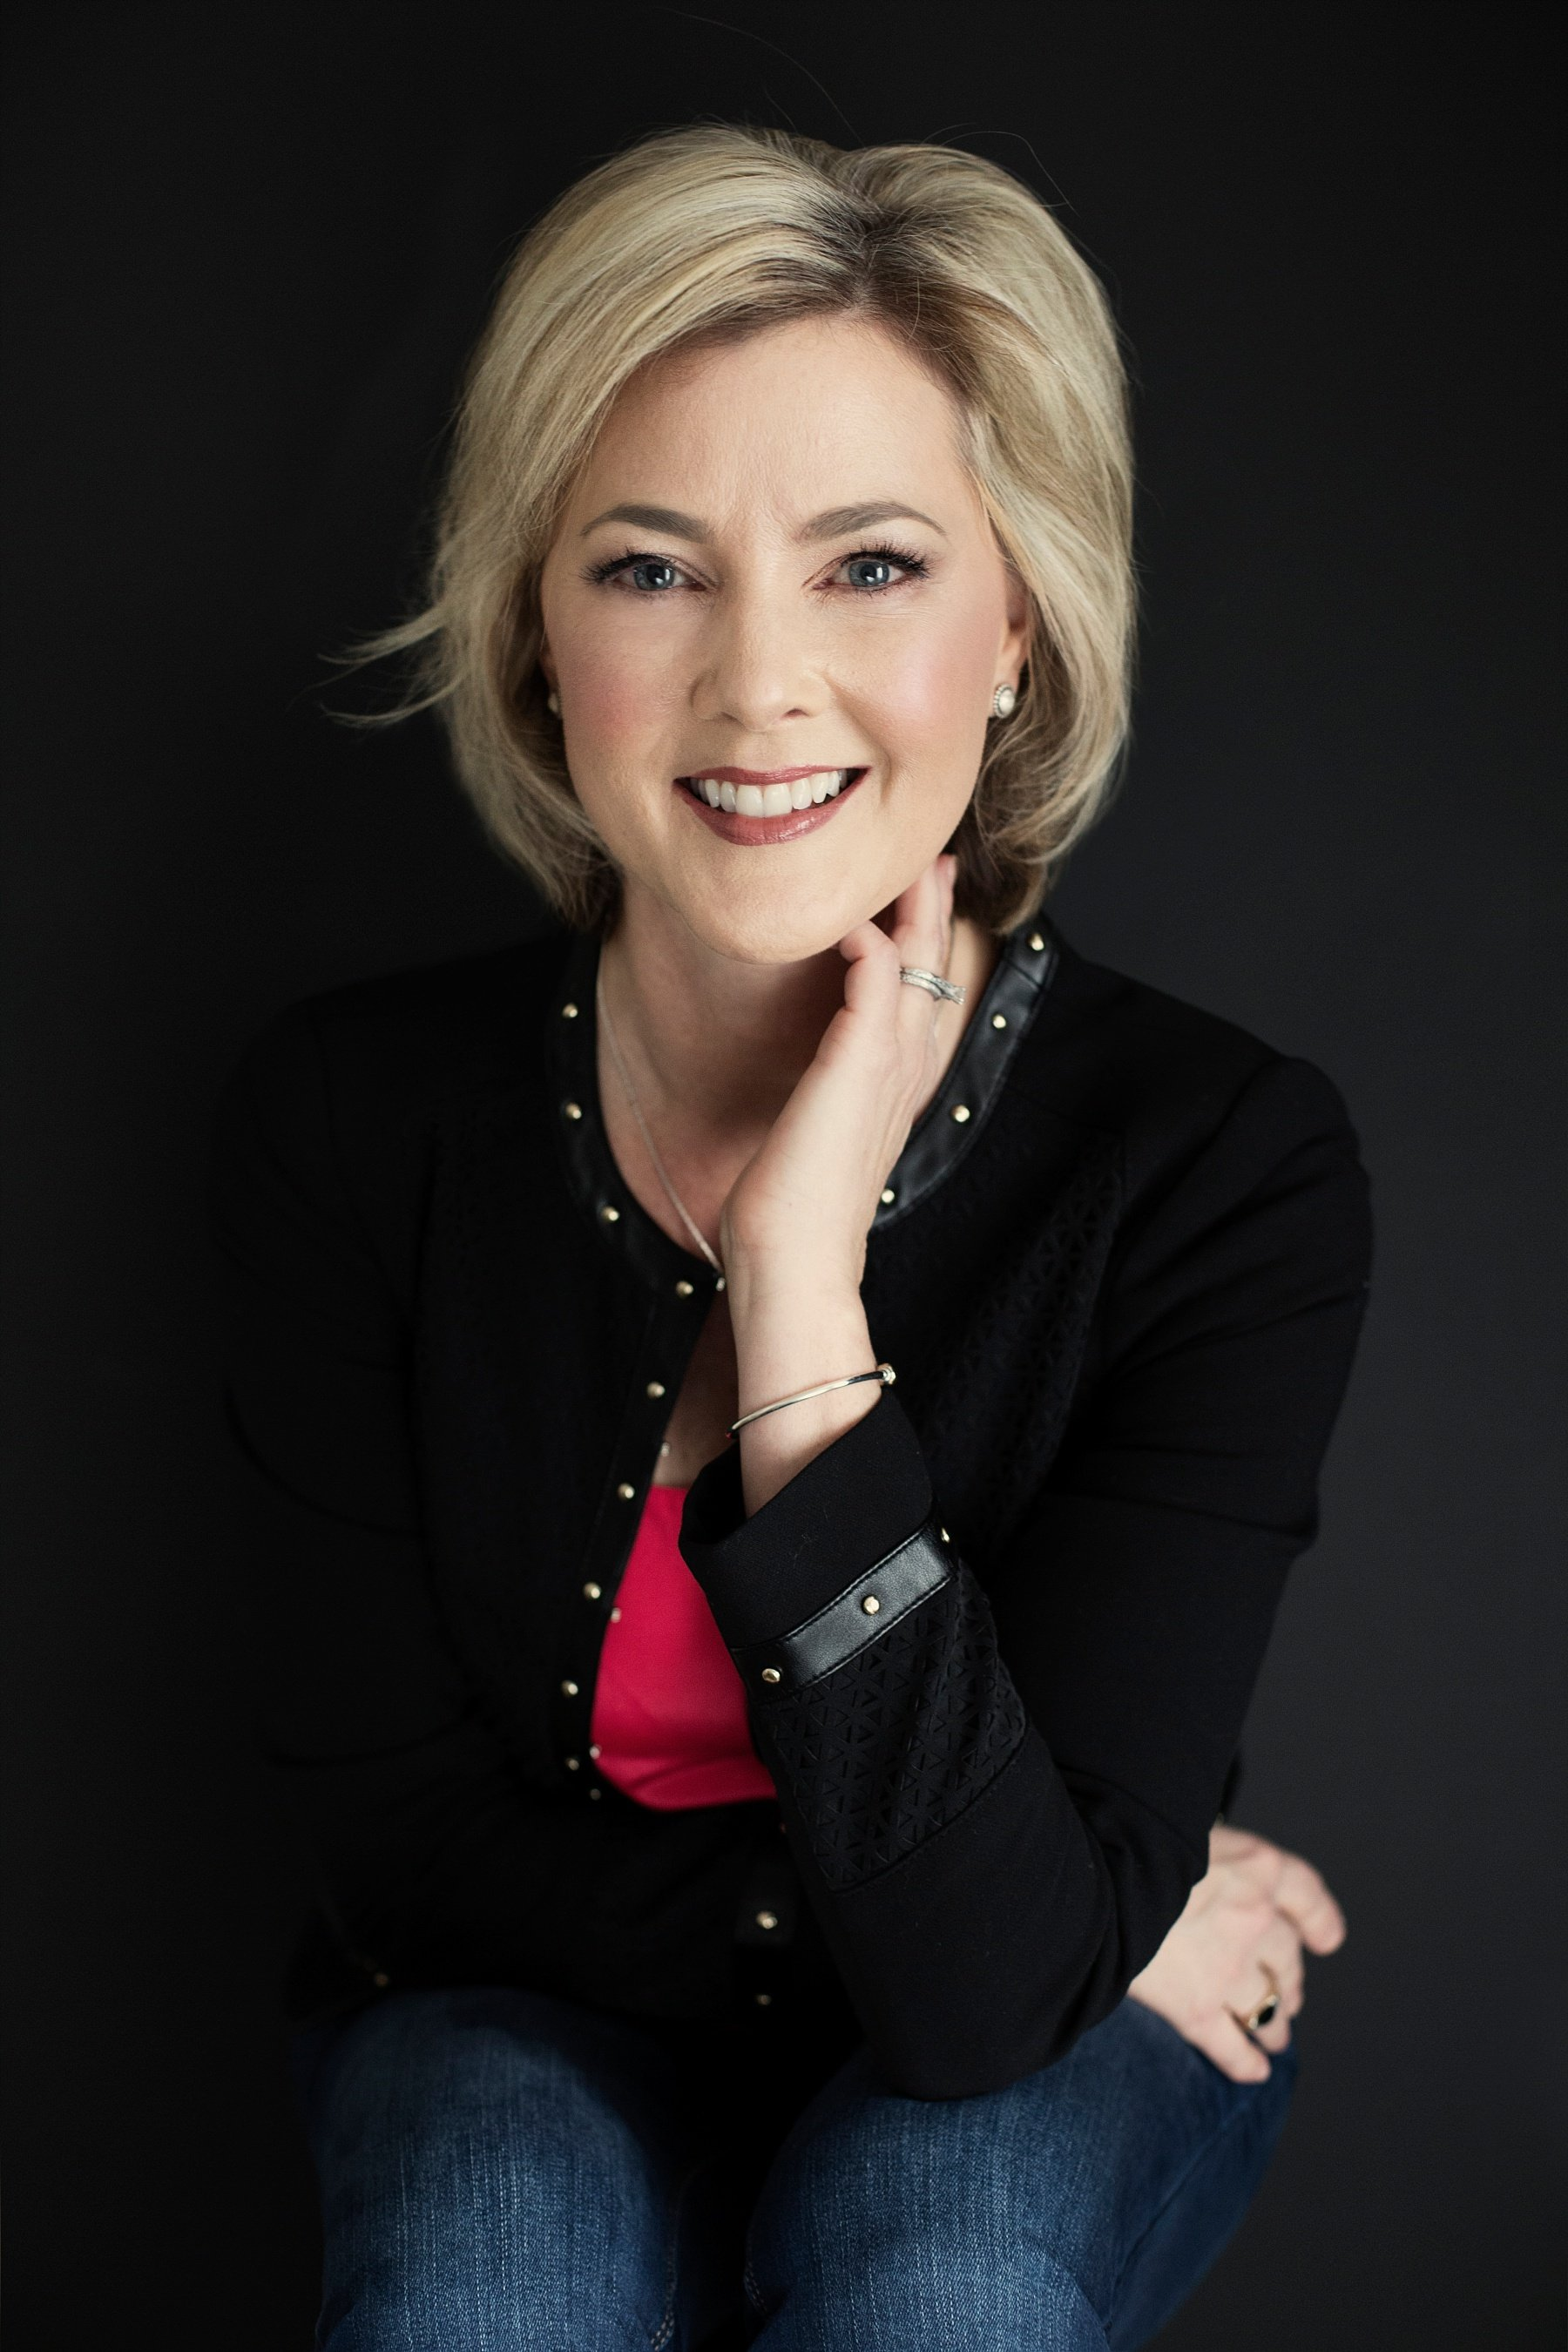 Allison Dunn in a black cardigan smiling as she sits and poses against a black background with one hand rested against her face..